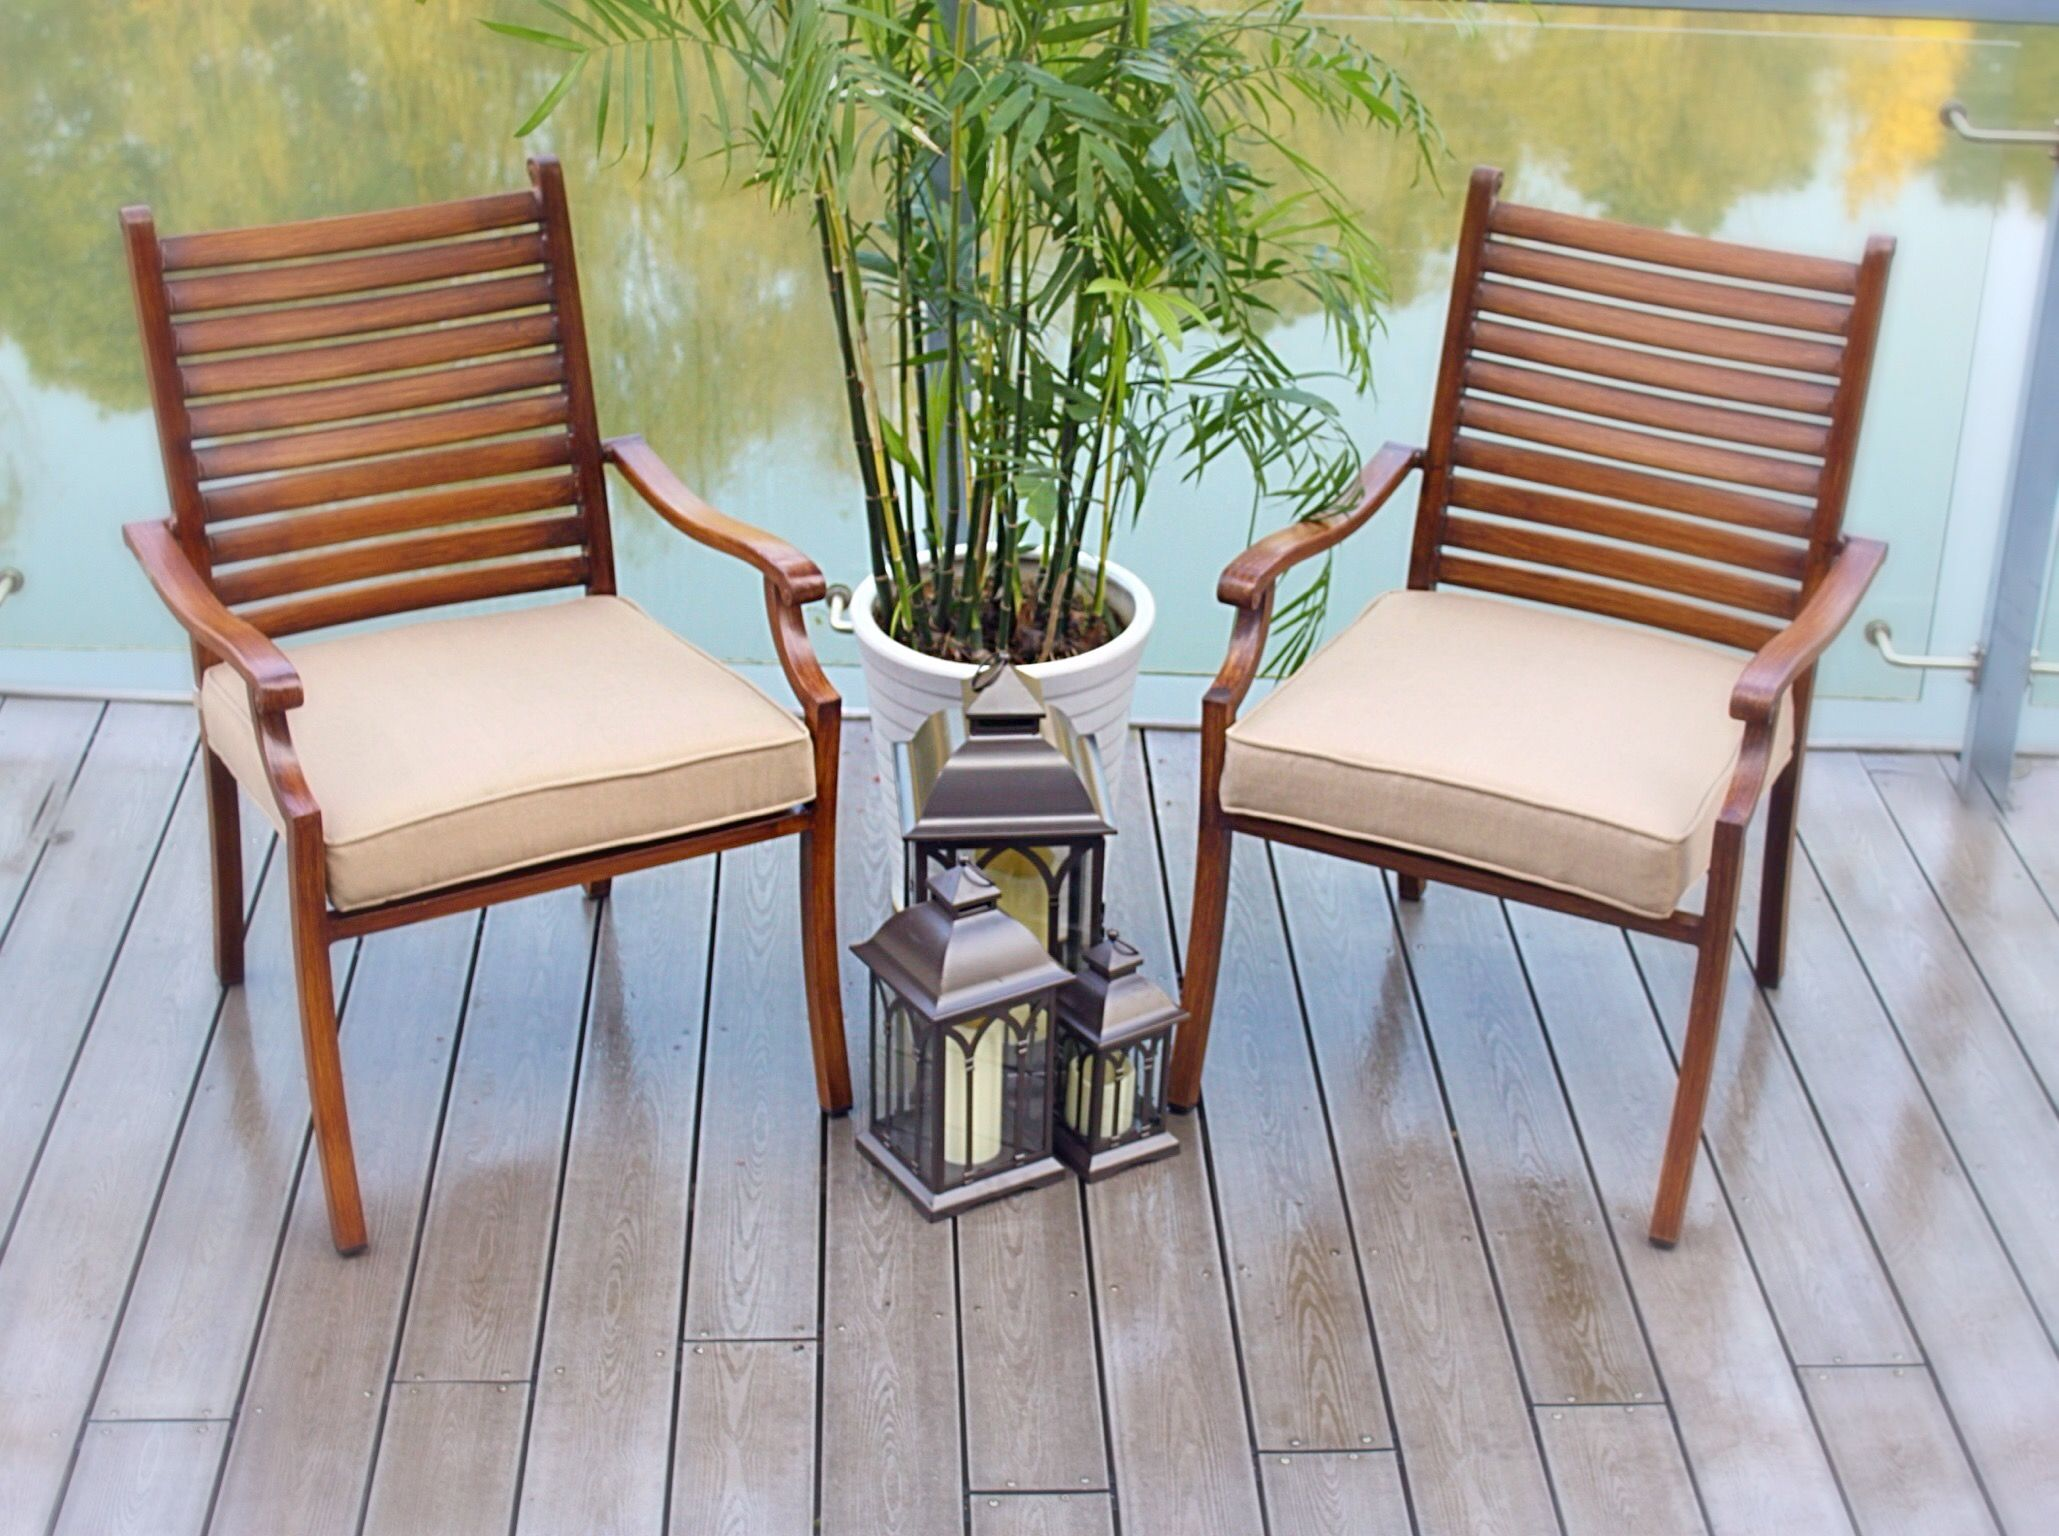 Set Of 2 Bahamian Breeze Cast Aluminum Stacking Hand Painted Wood Look Chairs